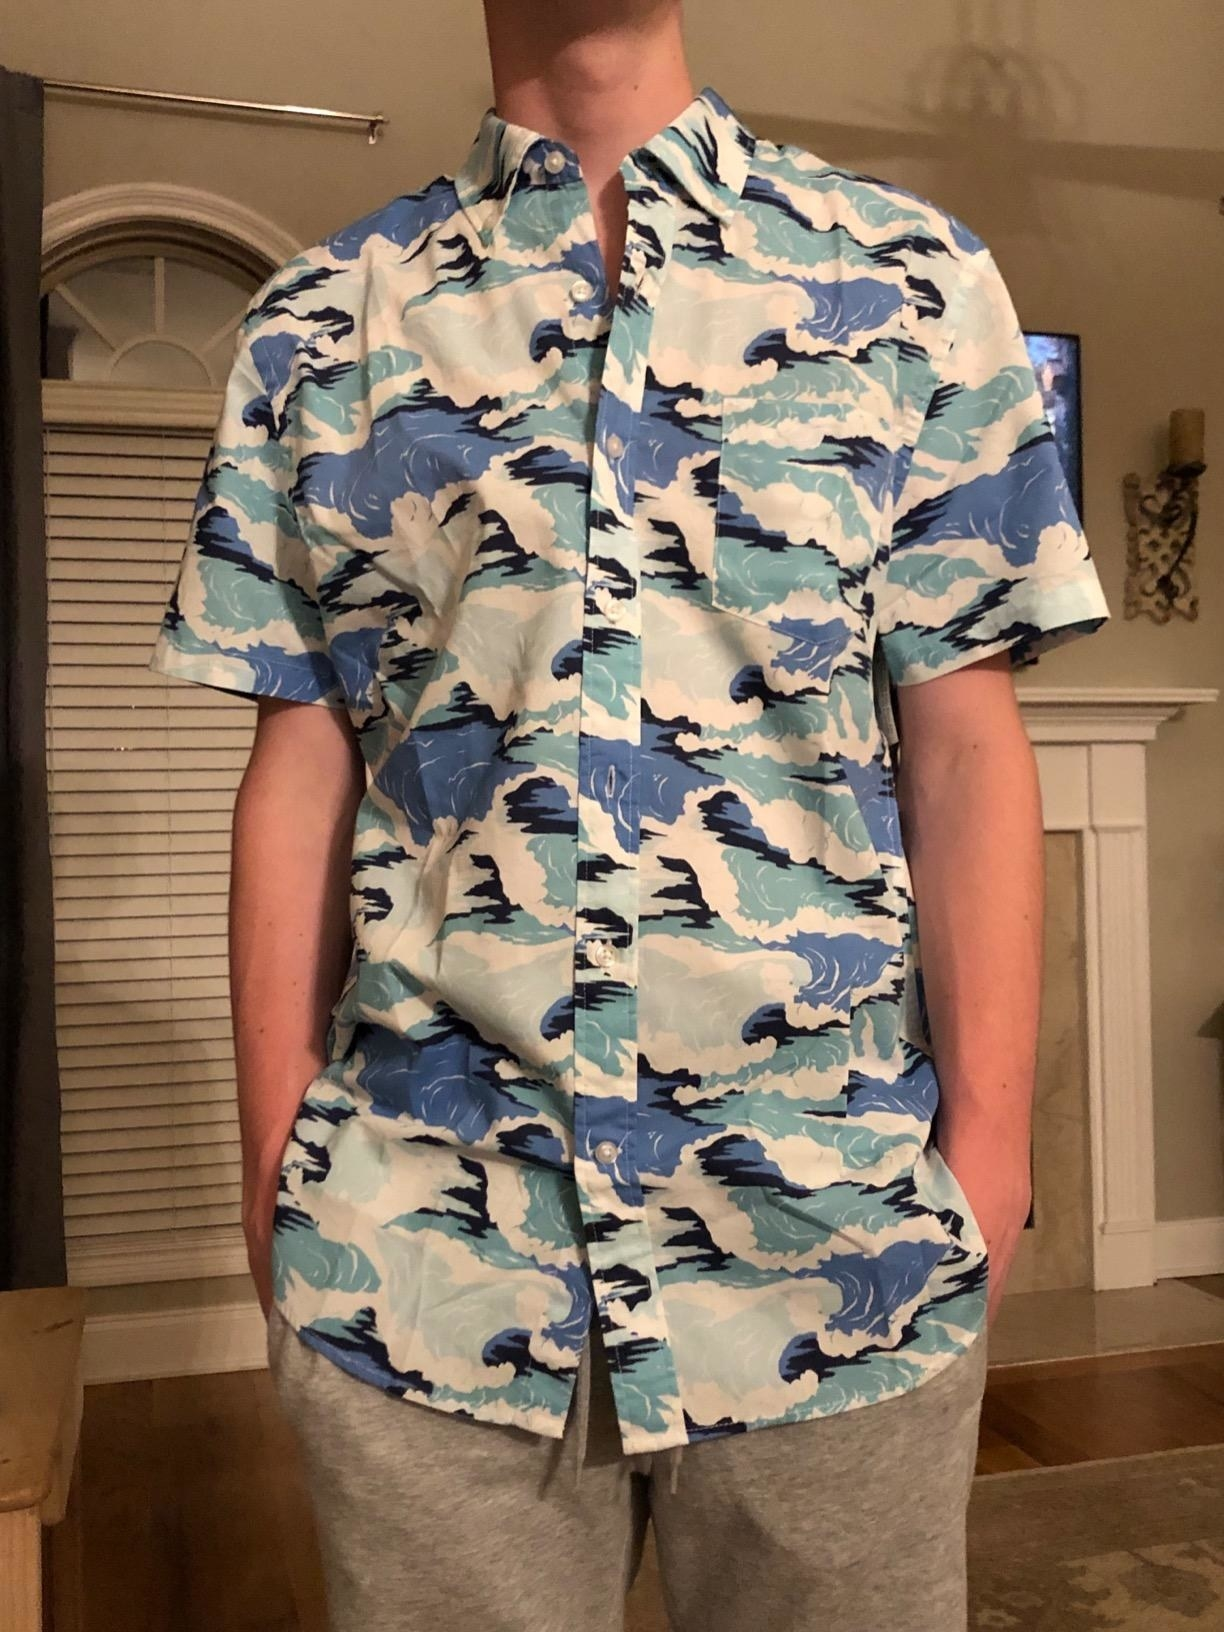 A reviewer wears the shirt with a wave pattern on it